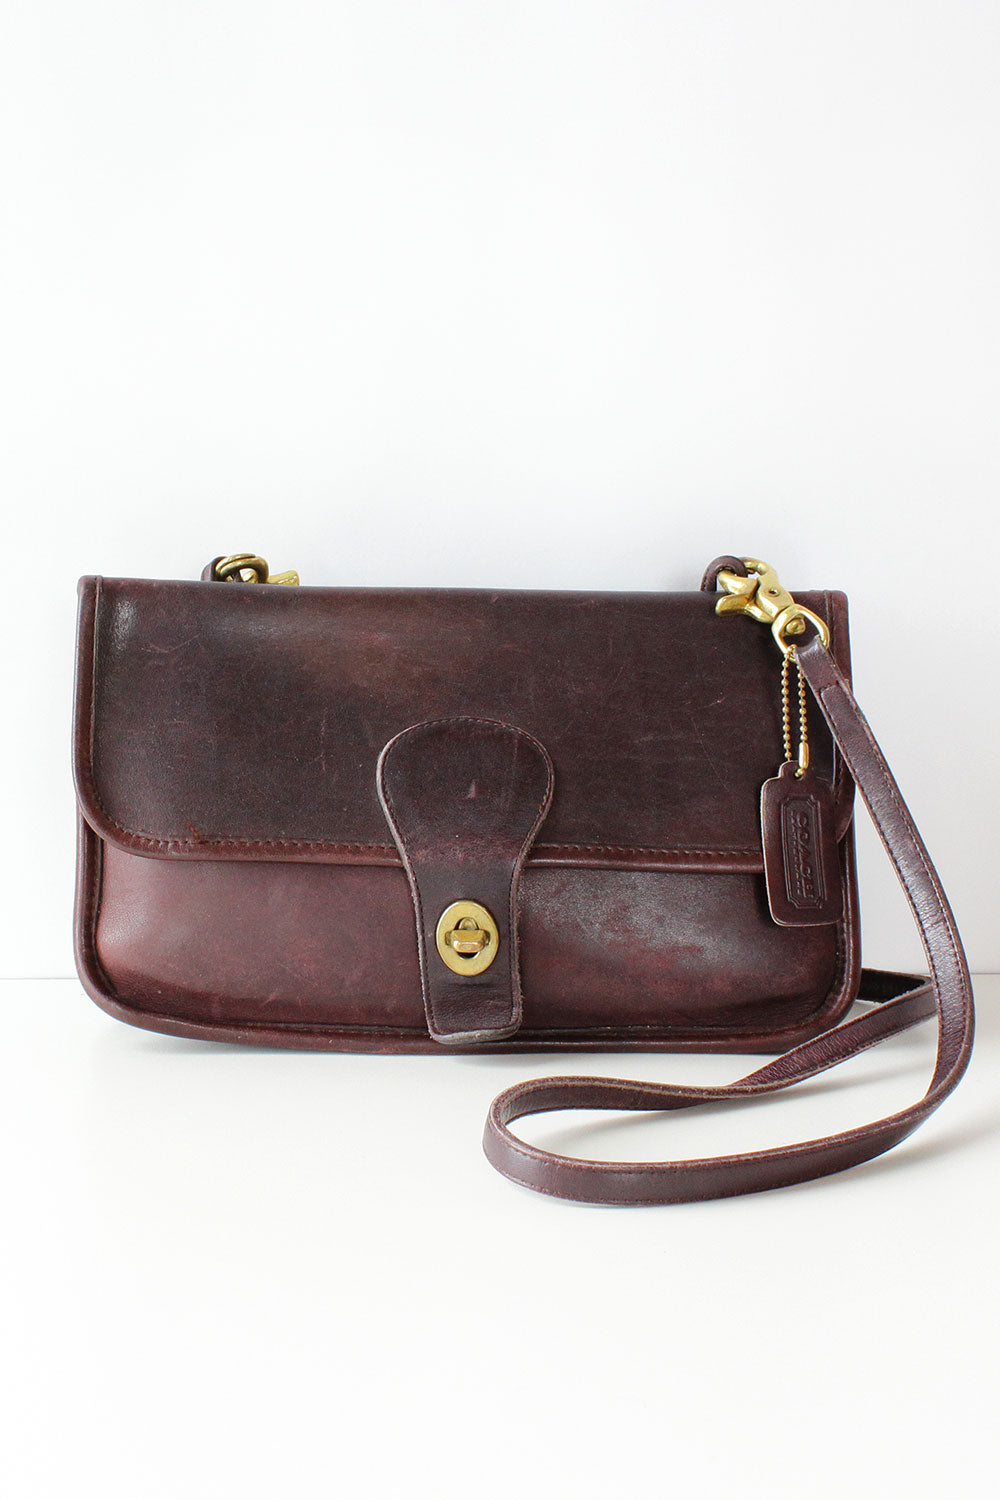 Coach Double Sided Satchel (Rare)